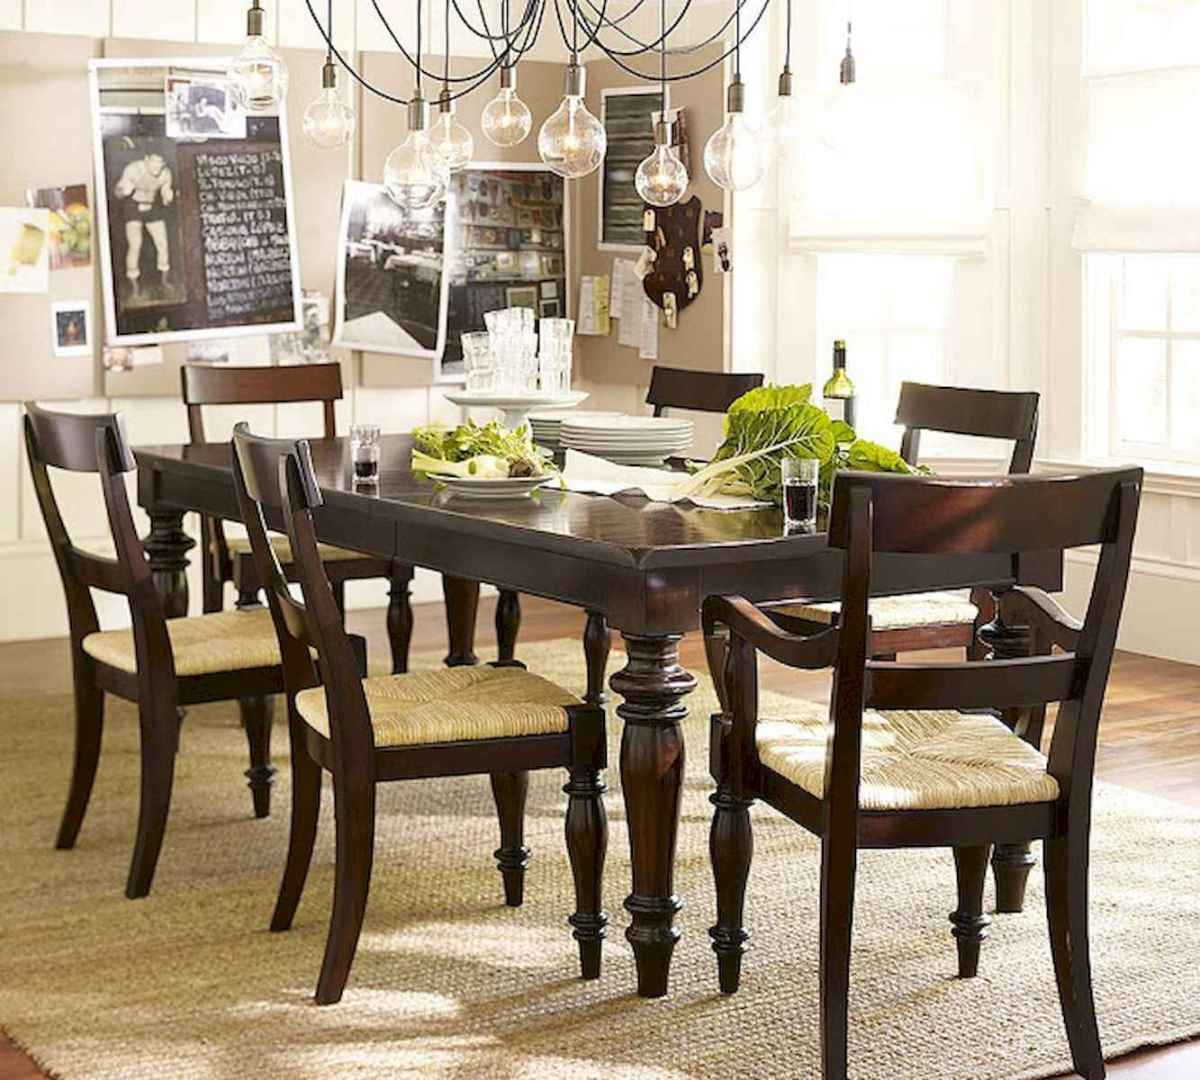 50 Vintage Dining Table Design Ideas And Decor (34)